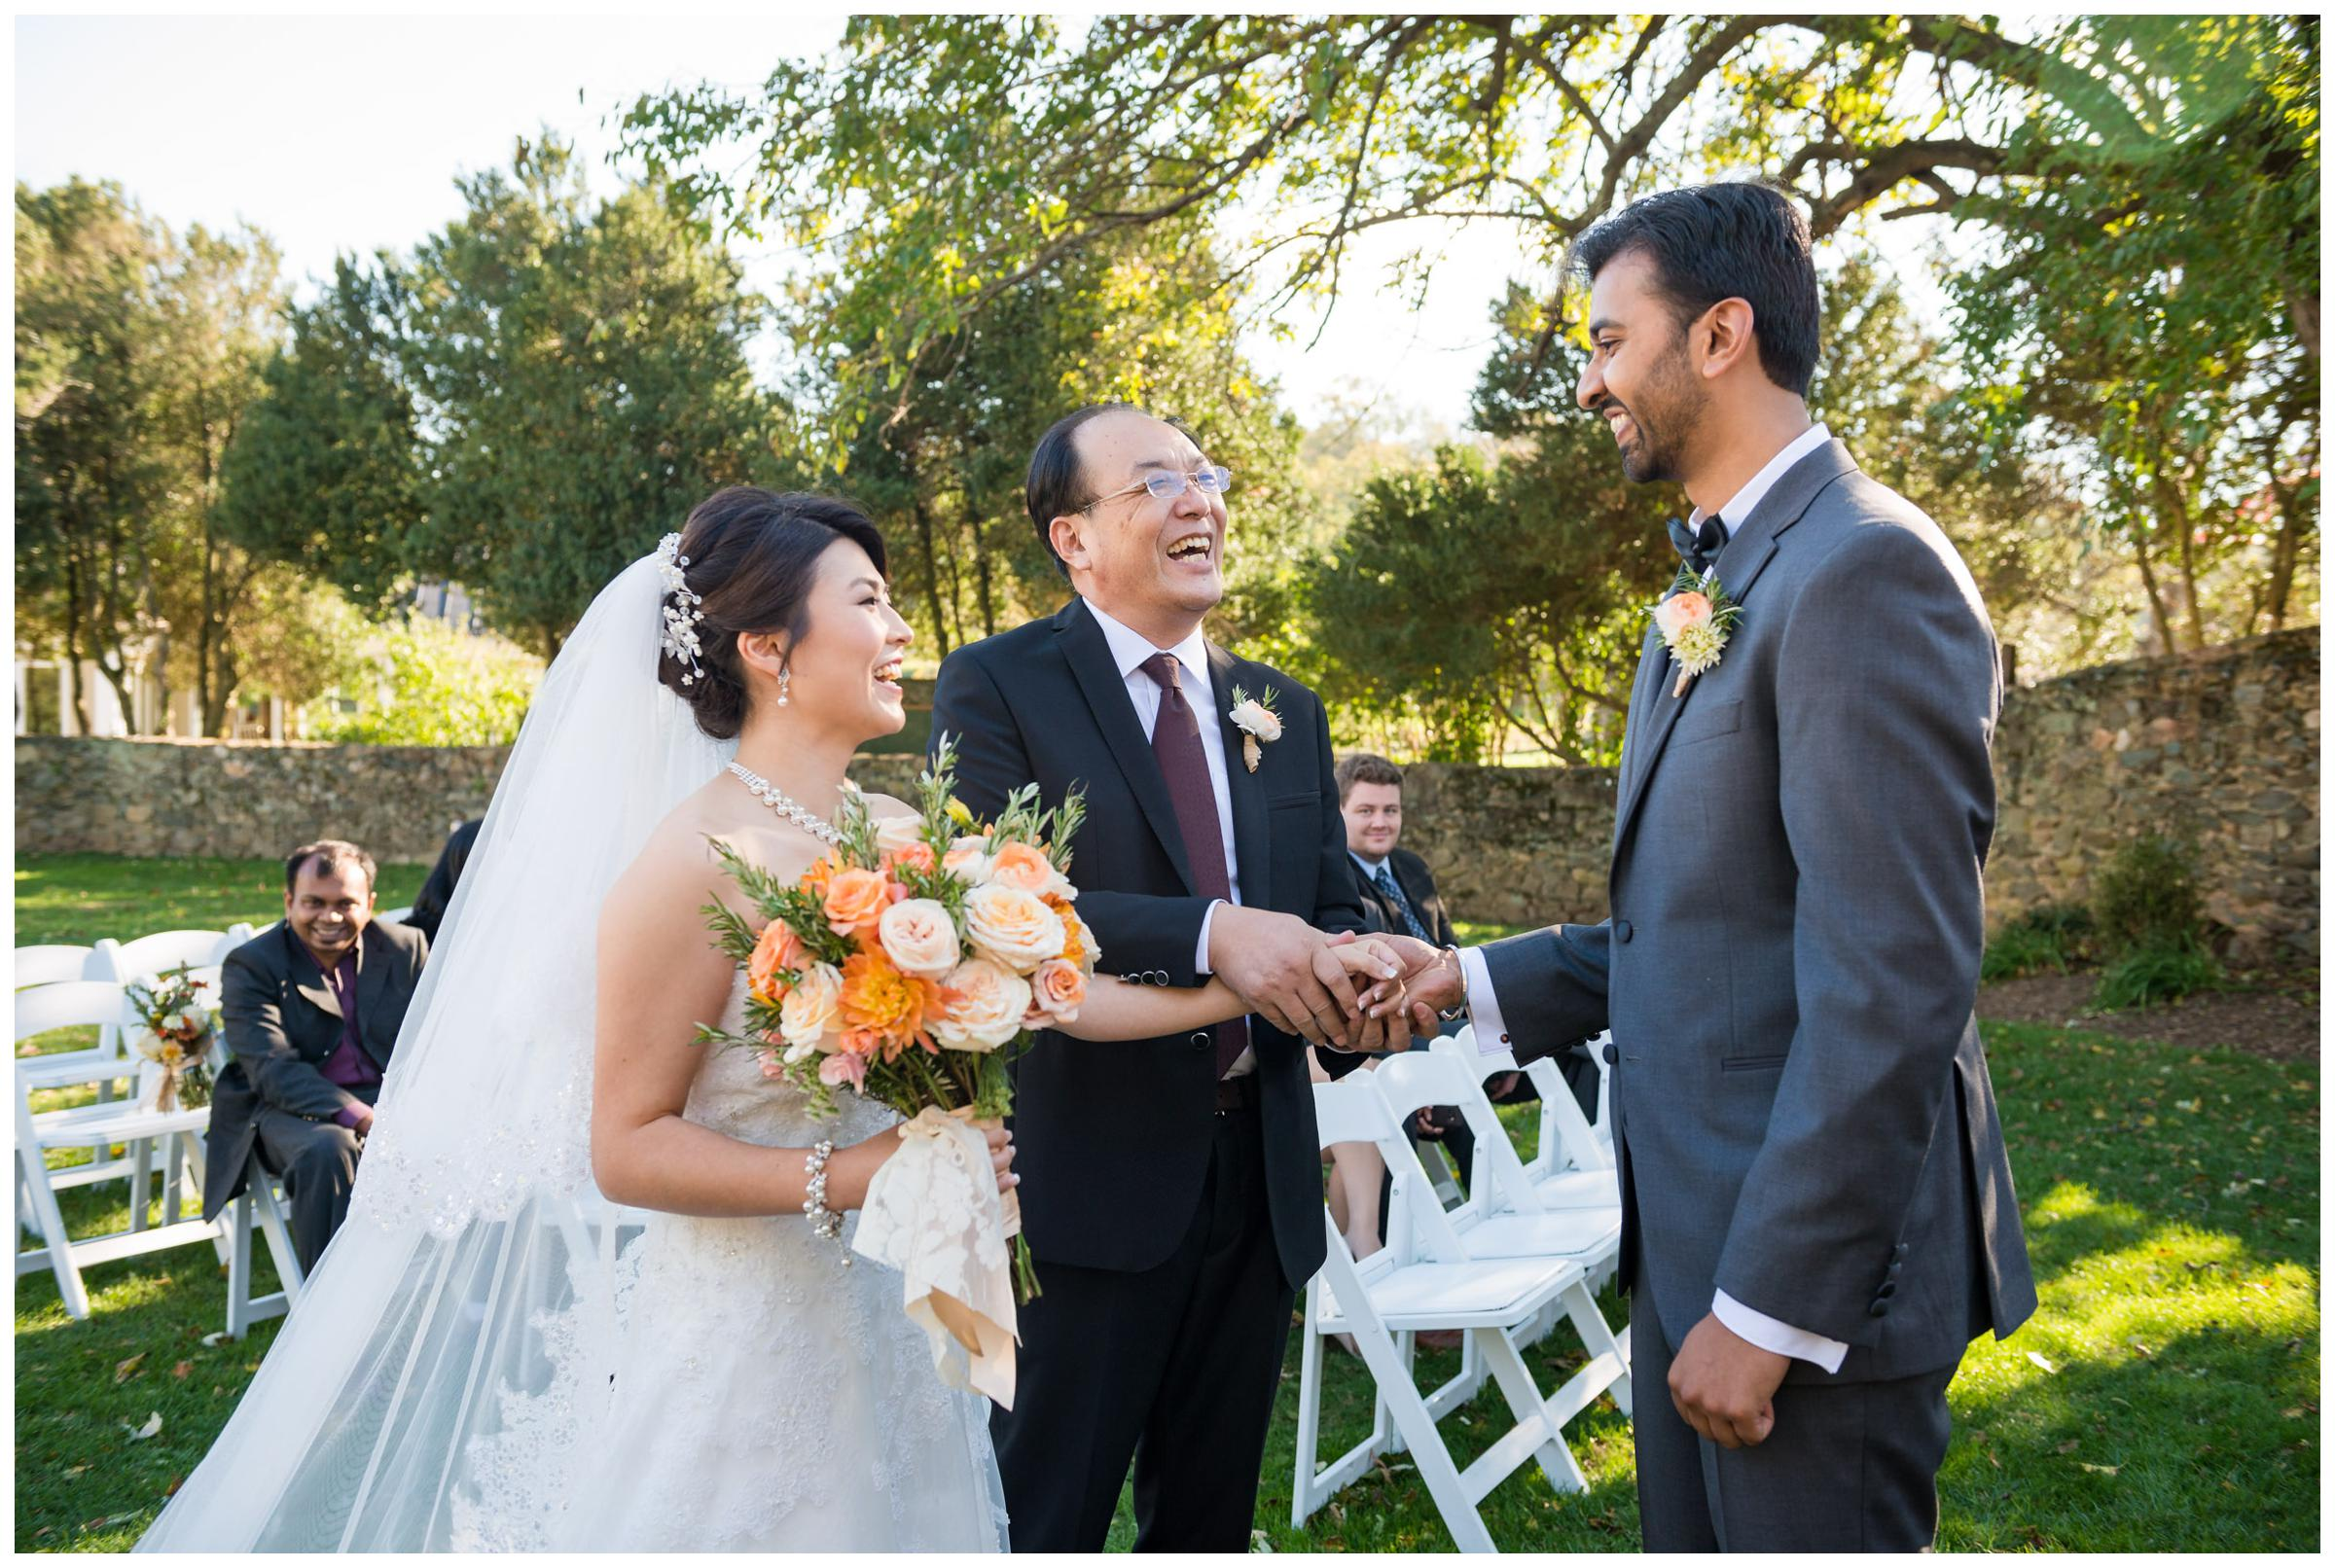 Father giving daughter away to groom during rustic wedding ceremony.